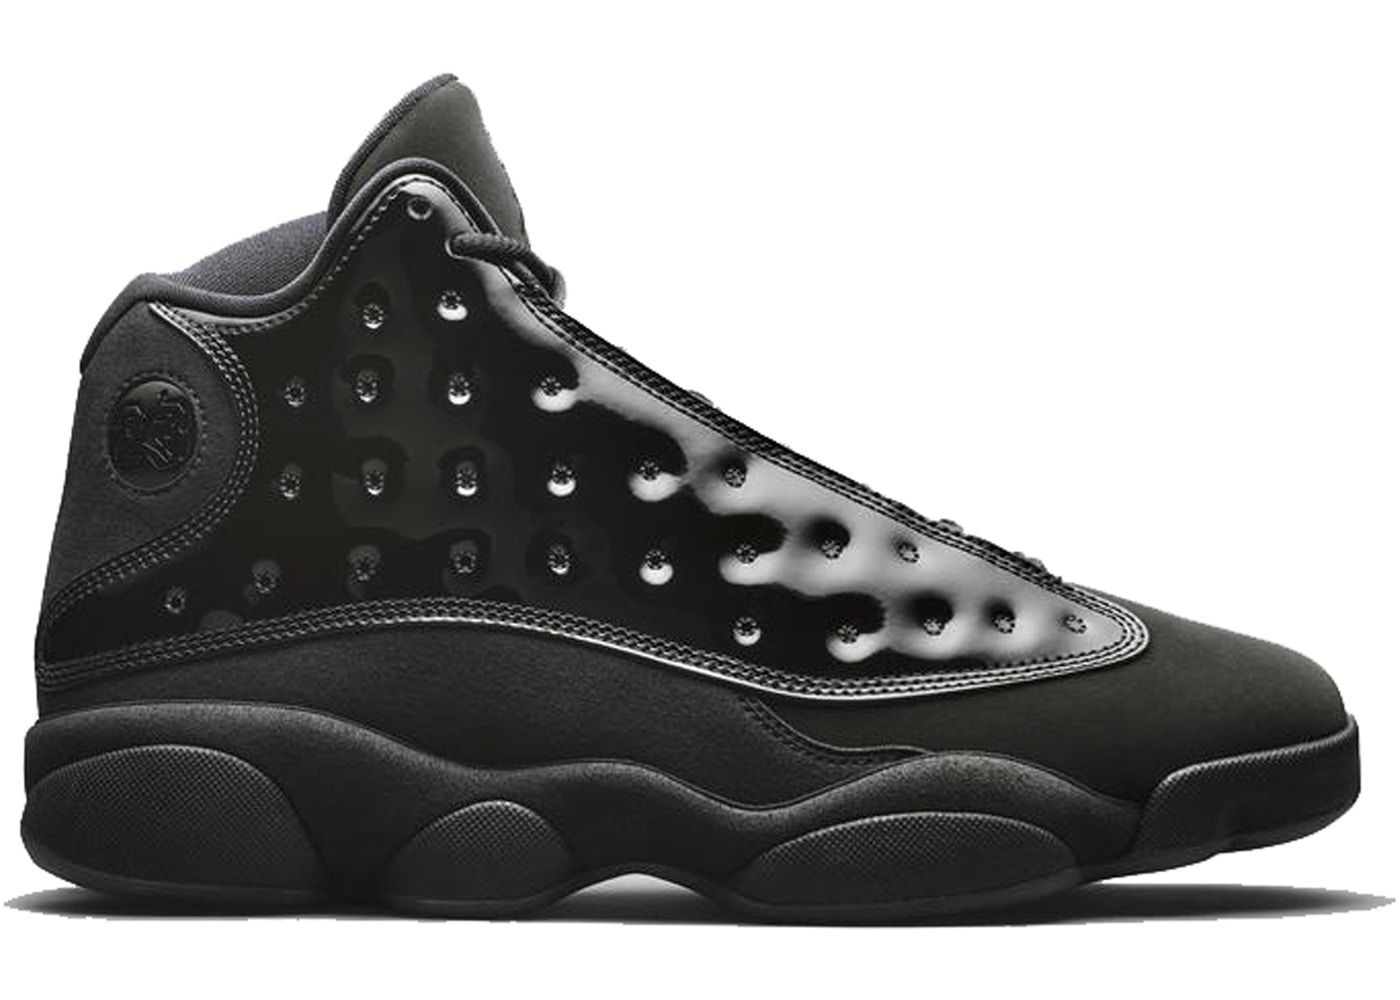 premium selection 97bc8 f9002 Air Jordan 13 Retro